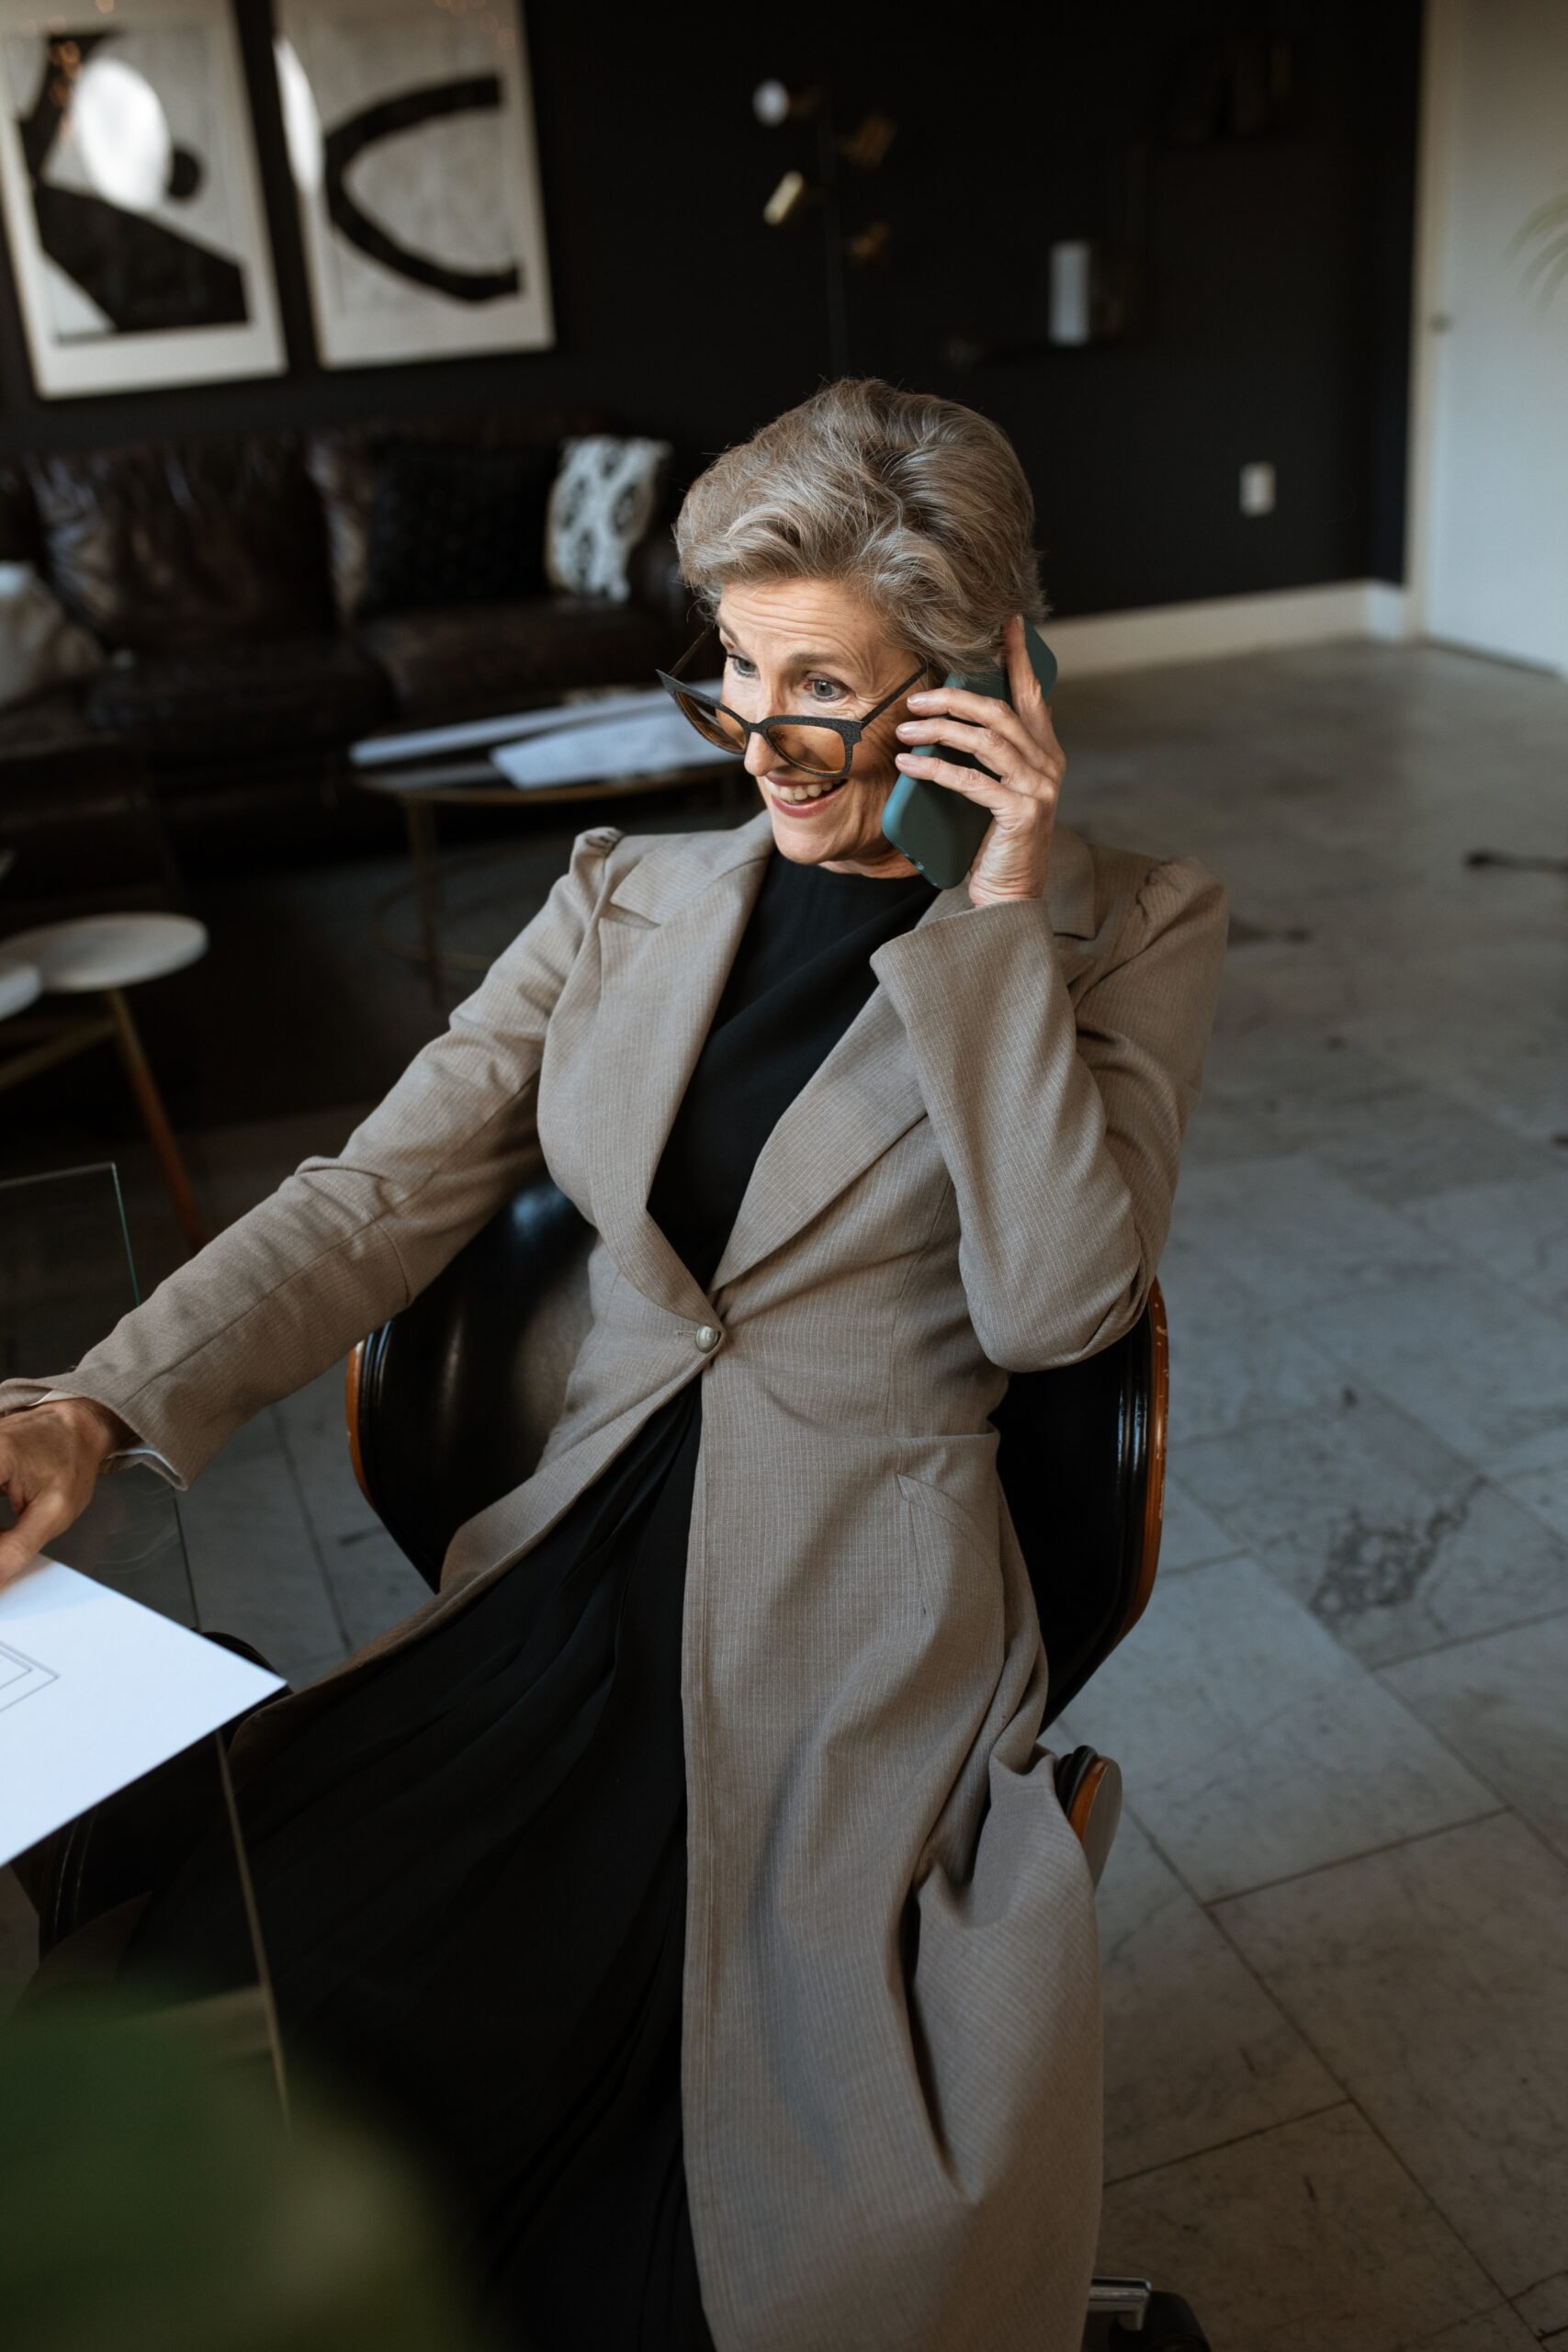 Professional woman on phone smiling at desk with papers.